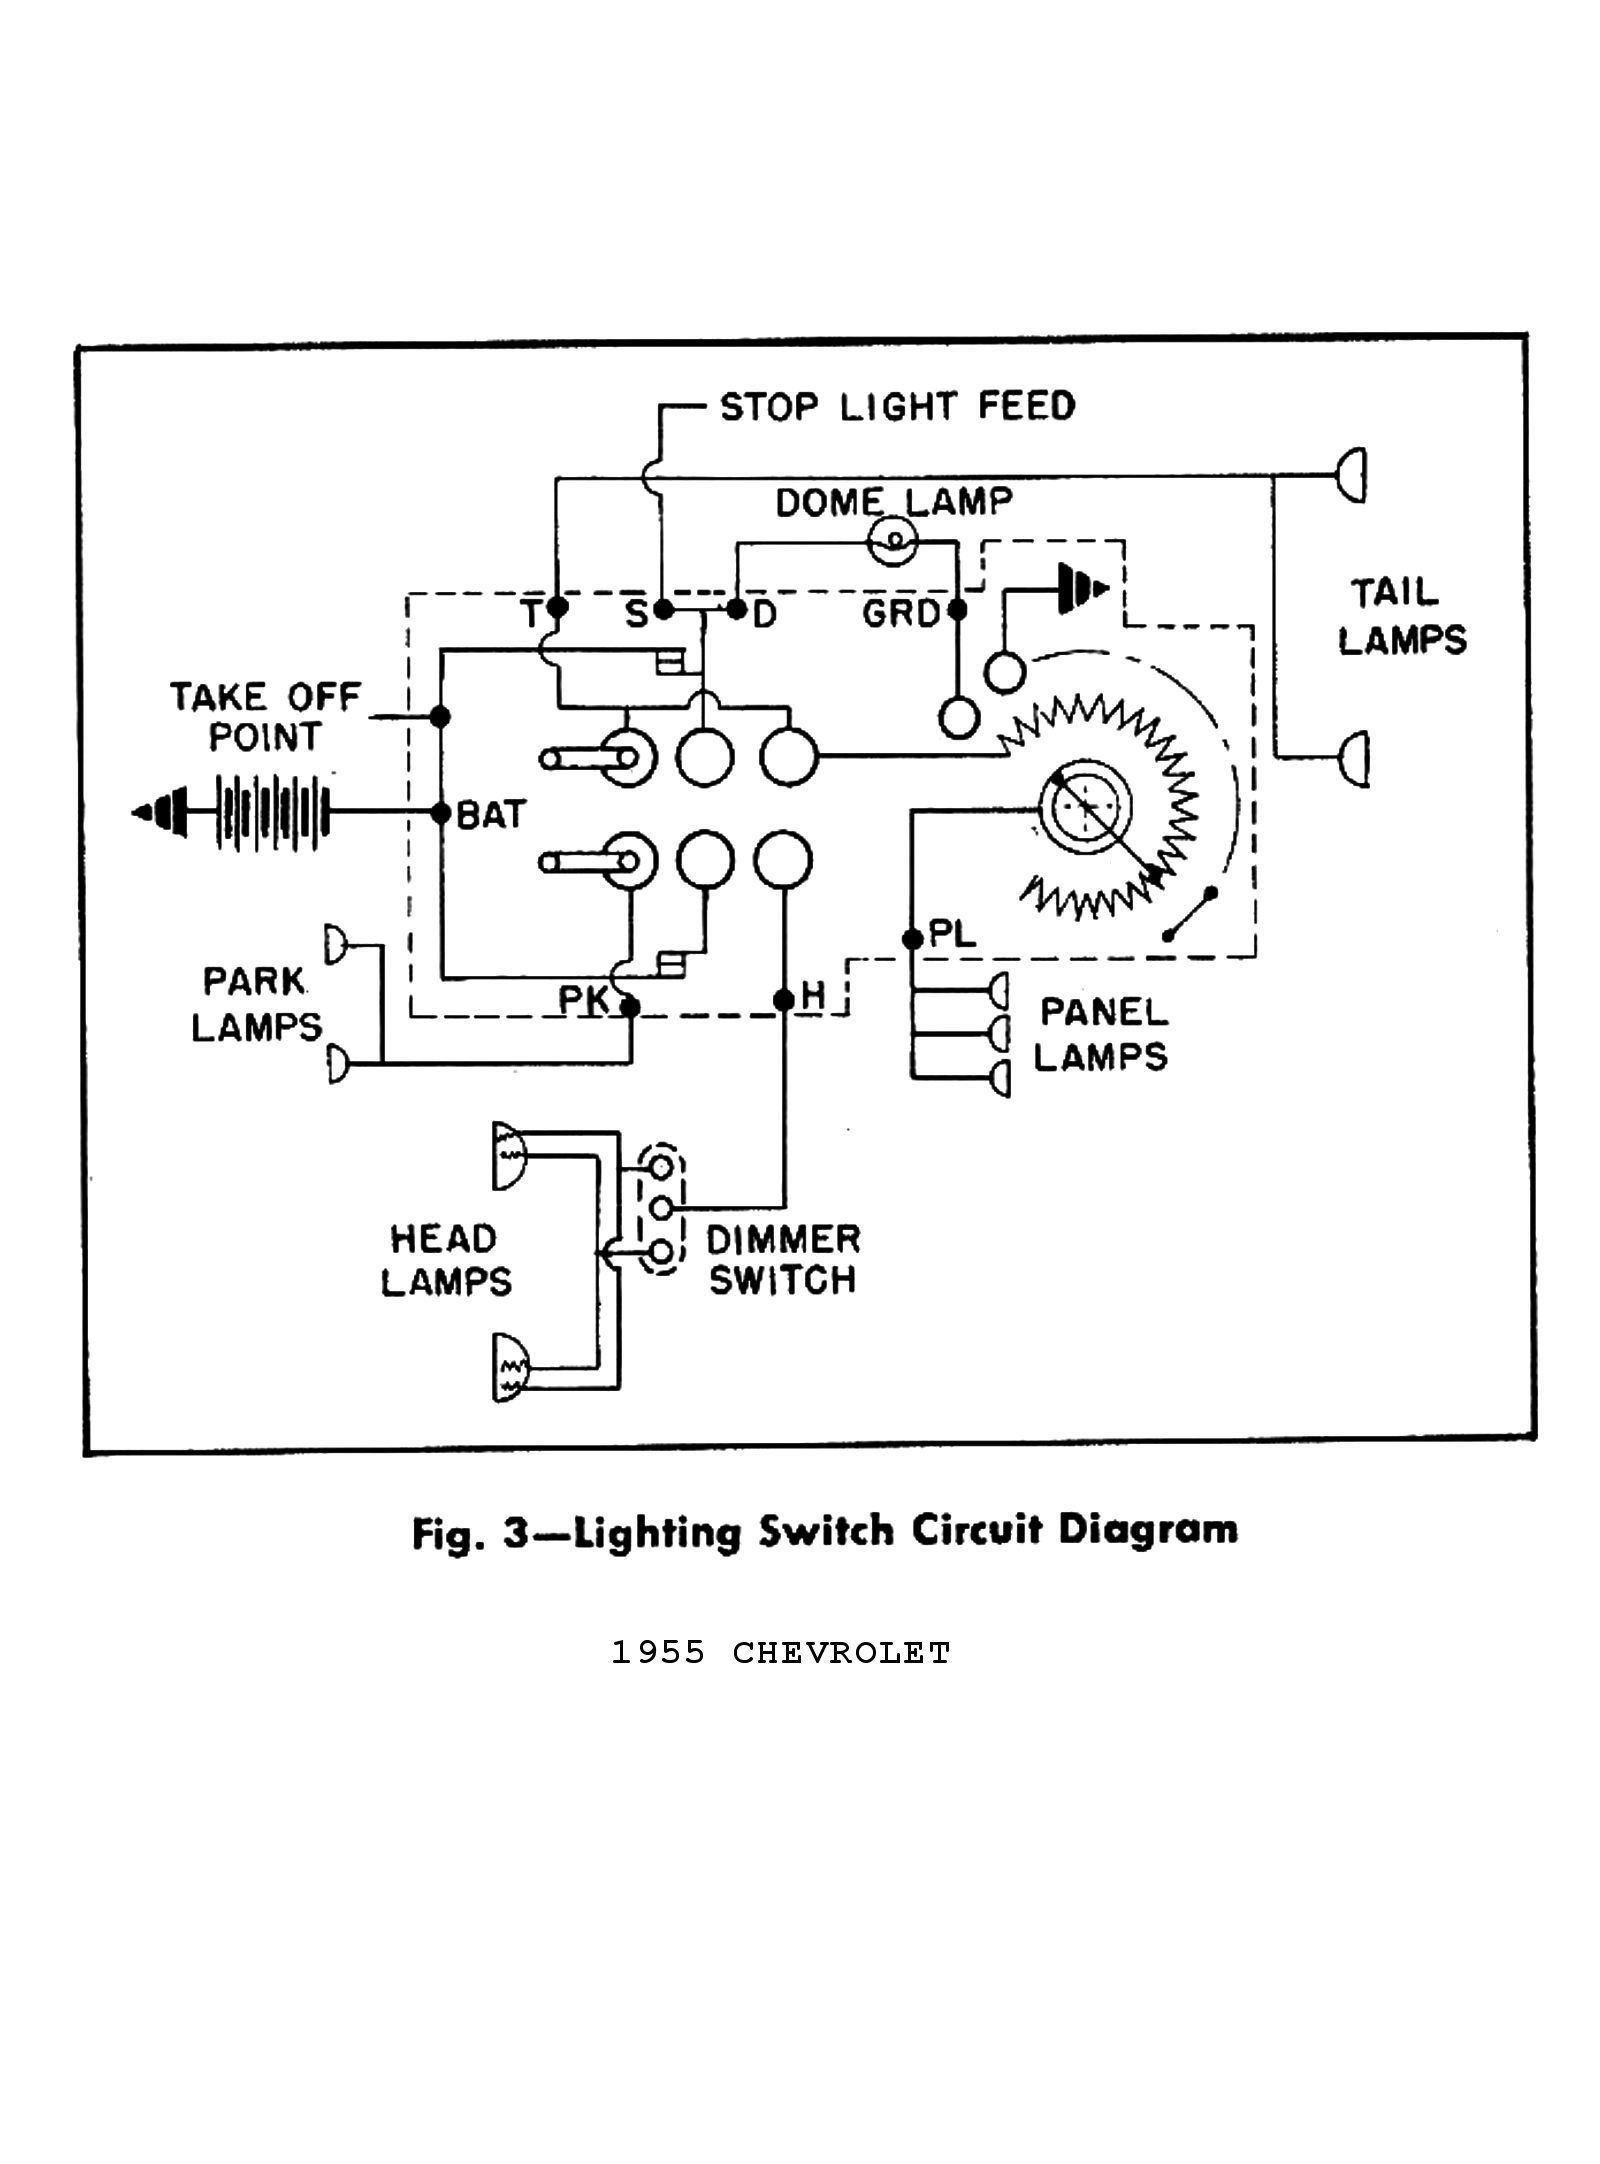 universal ignition switch wiring diagram inspirational 1955 chevy of for  1955 chevy ignition switch wiring… | light switch wiring, diagram,  electrical switch wiring  pinterest